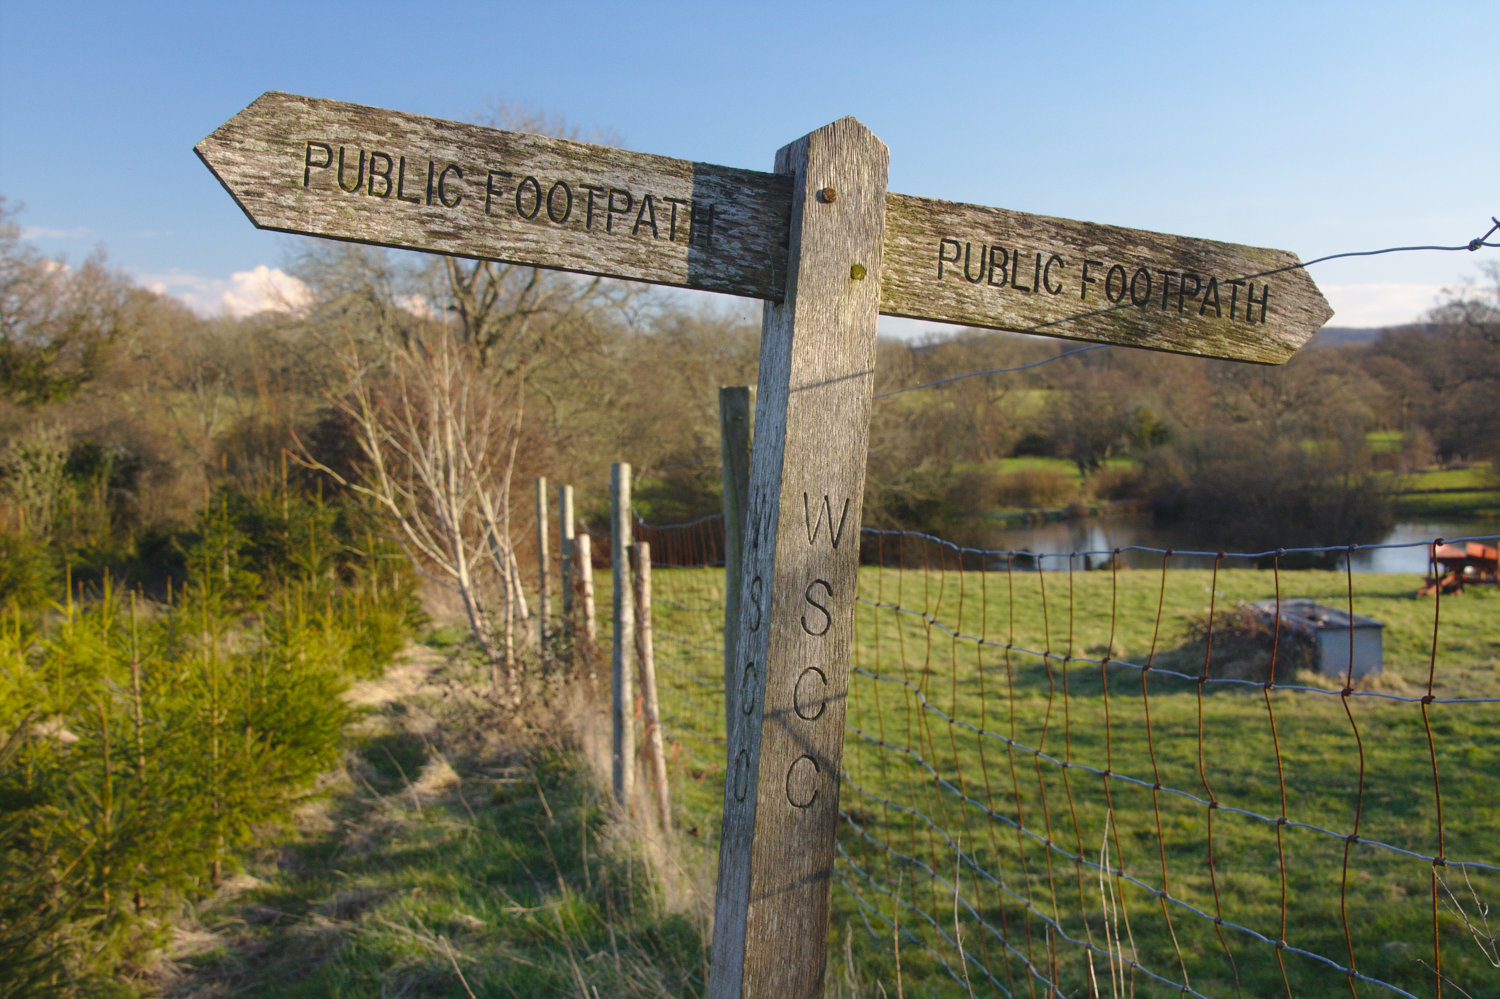 Footpath sign near farmhouse